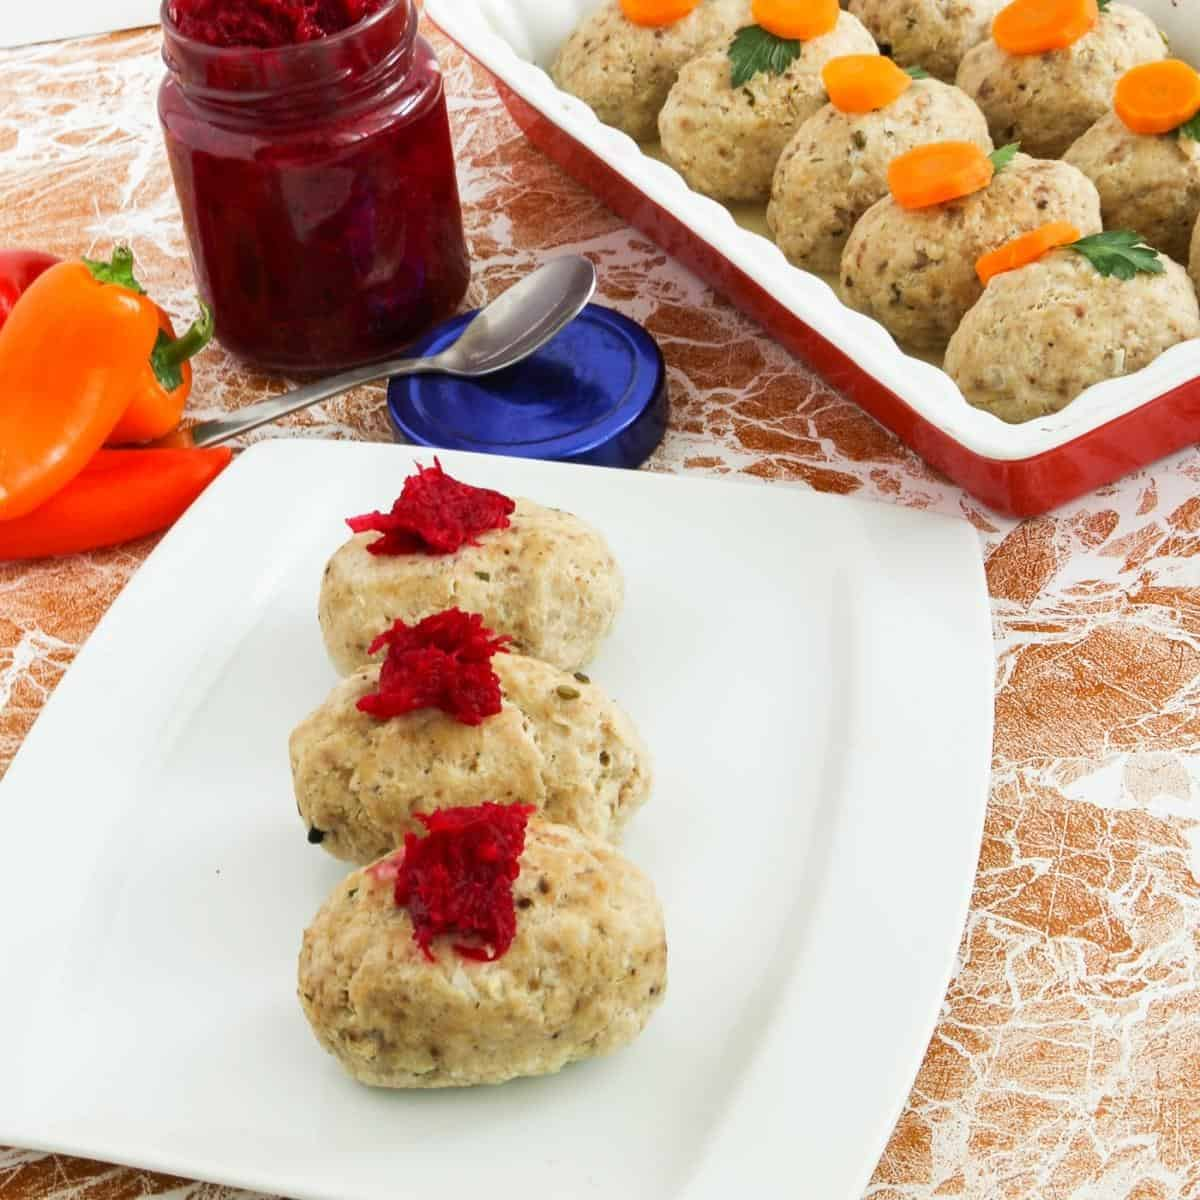 Gefilte fish on a white plate.